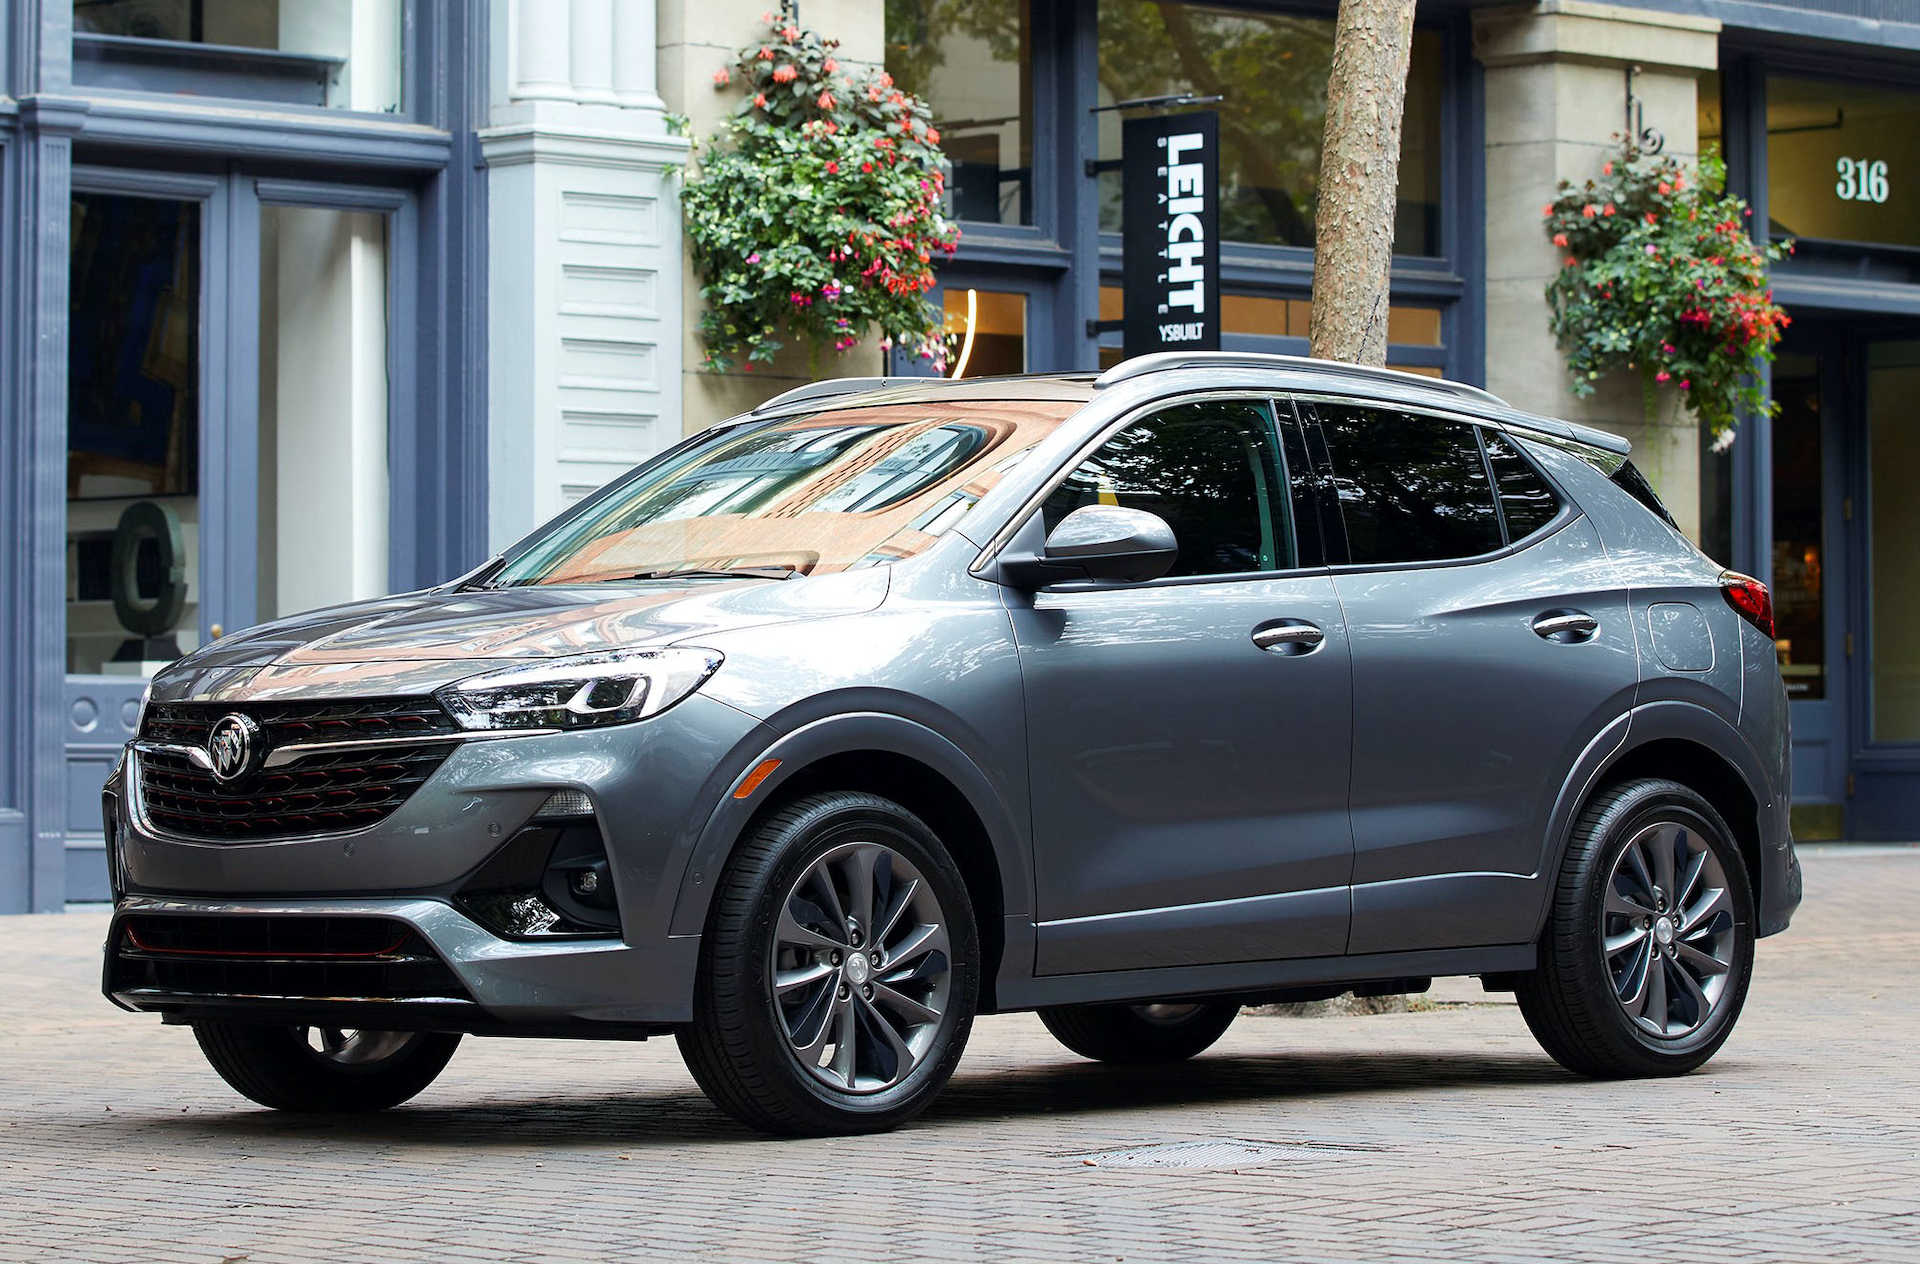 2021 Buick Encore Review, Ratings, Specs, Prices, And Photos New 2021 Buick Encore Gx Length, Price, Gas Mileage